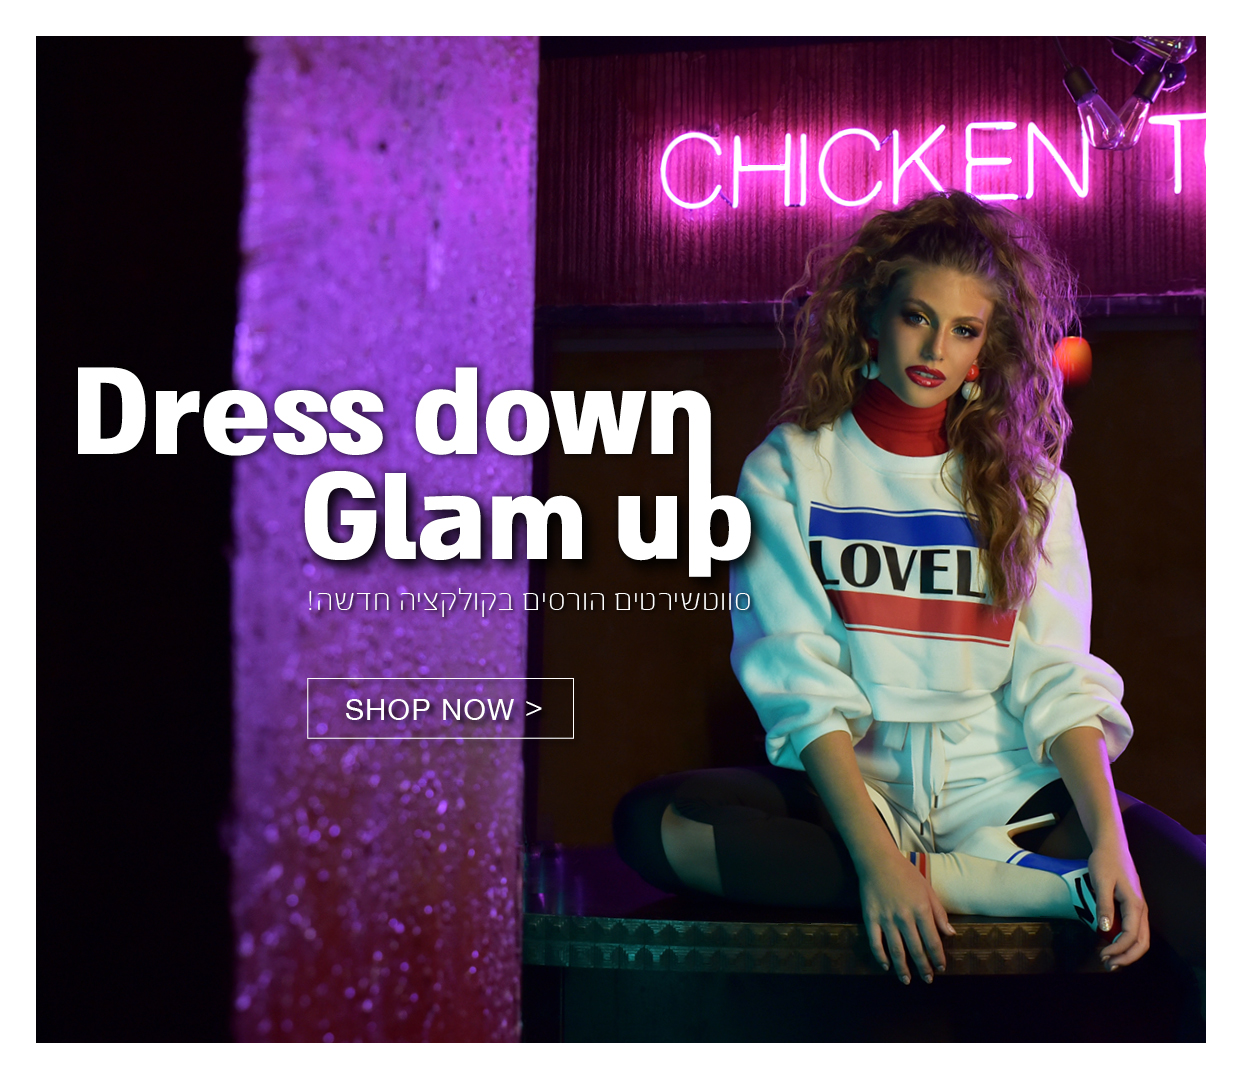 DRESS DOWN GLAM UP!